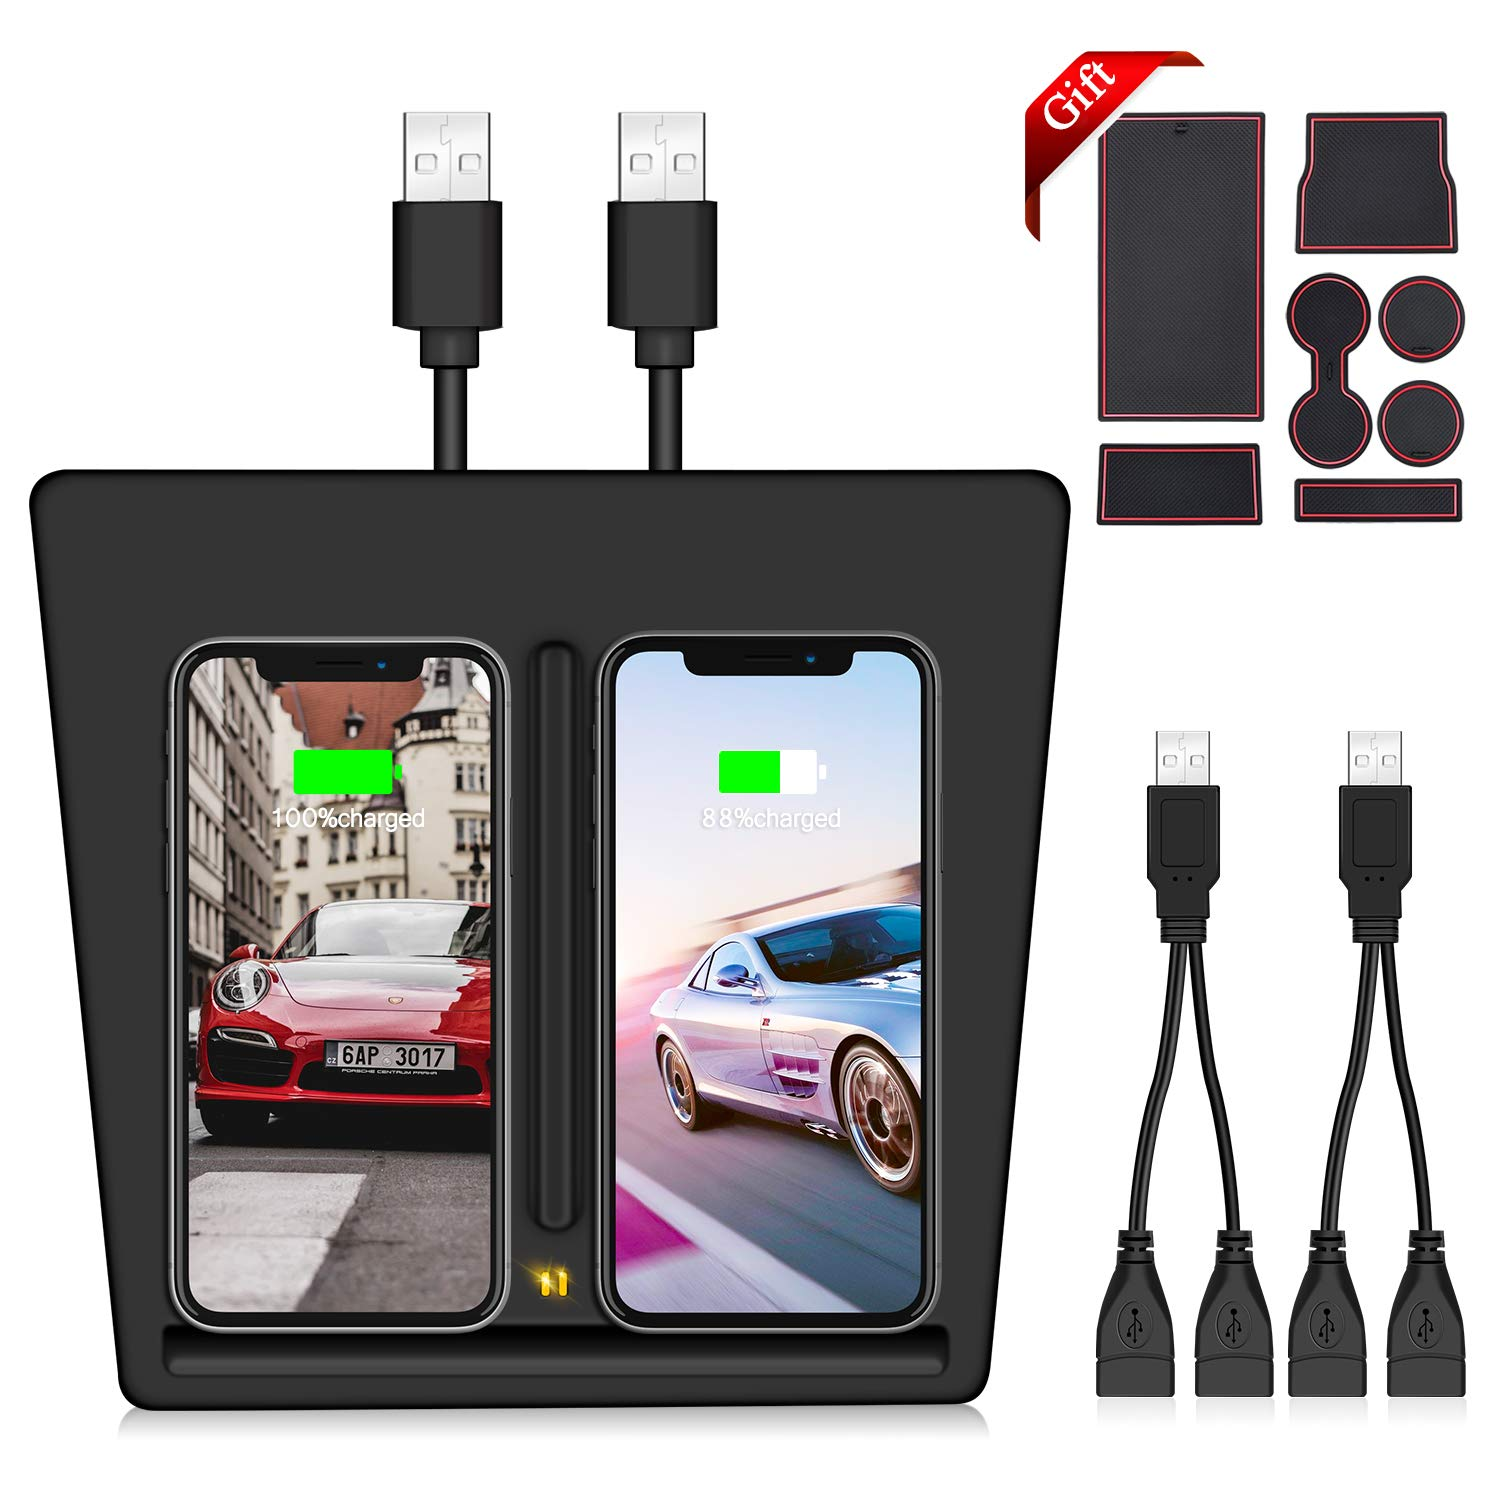 VXDAS Model 3 Wireless Charger, Dual QI Wireless Phone Charging Pad Car Center Console Wireless Charger Tesla Model 3 Accessories Panel with USB Splitter (7pcs Storage Mat Set) by VXDAS